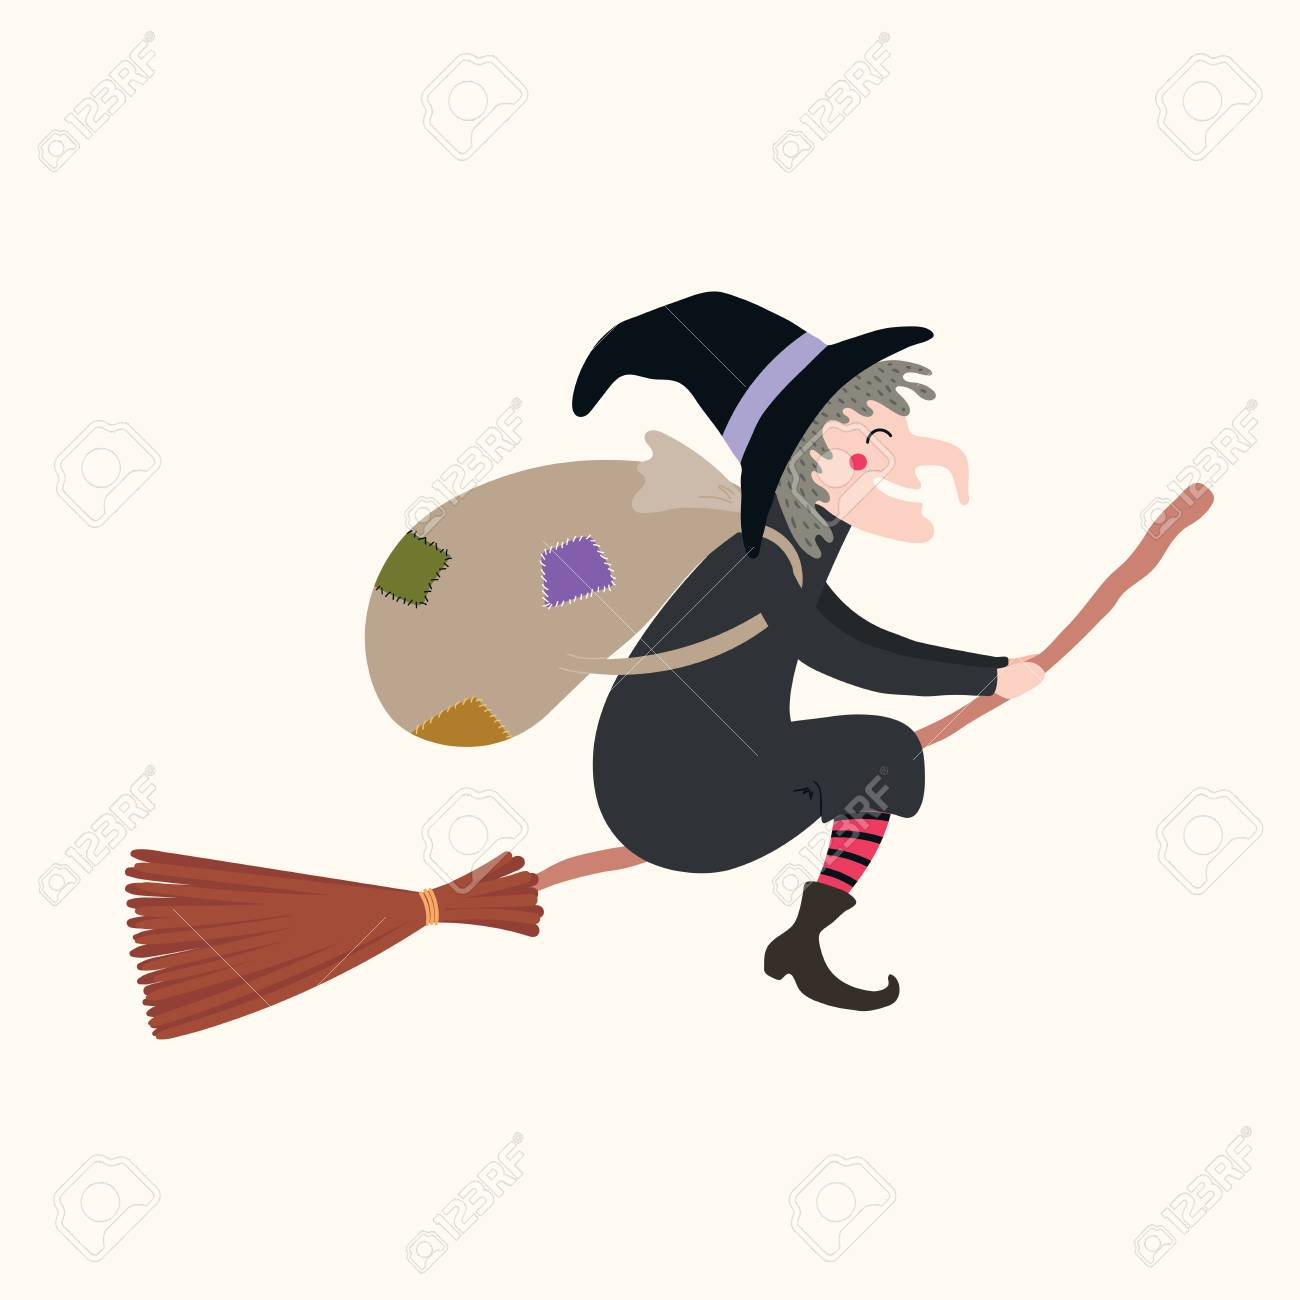 Hand drawn vector illustration of a witch with sack flying on broomstick. Isolated objects on white background. Flat style design. Italy Christmas tradition. Concept, element for Epiphany card, banner - 111355728